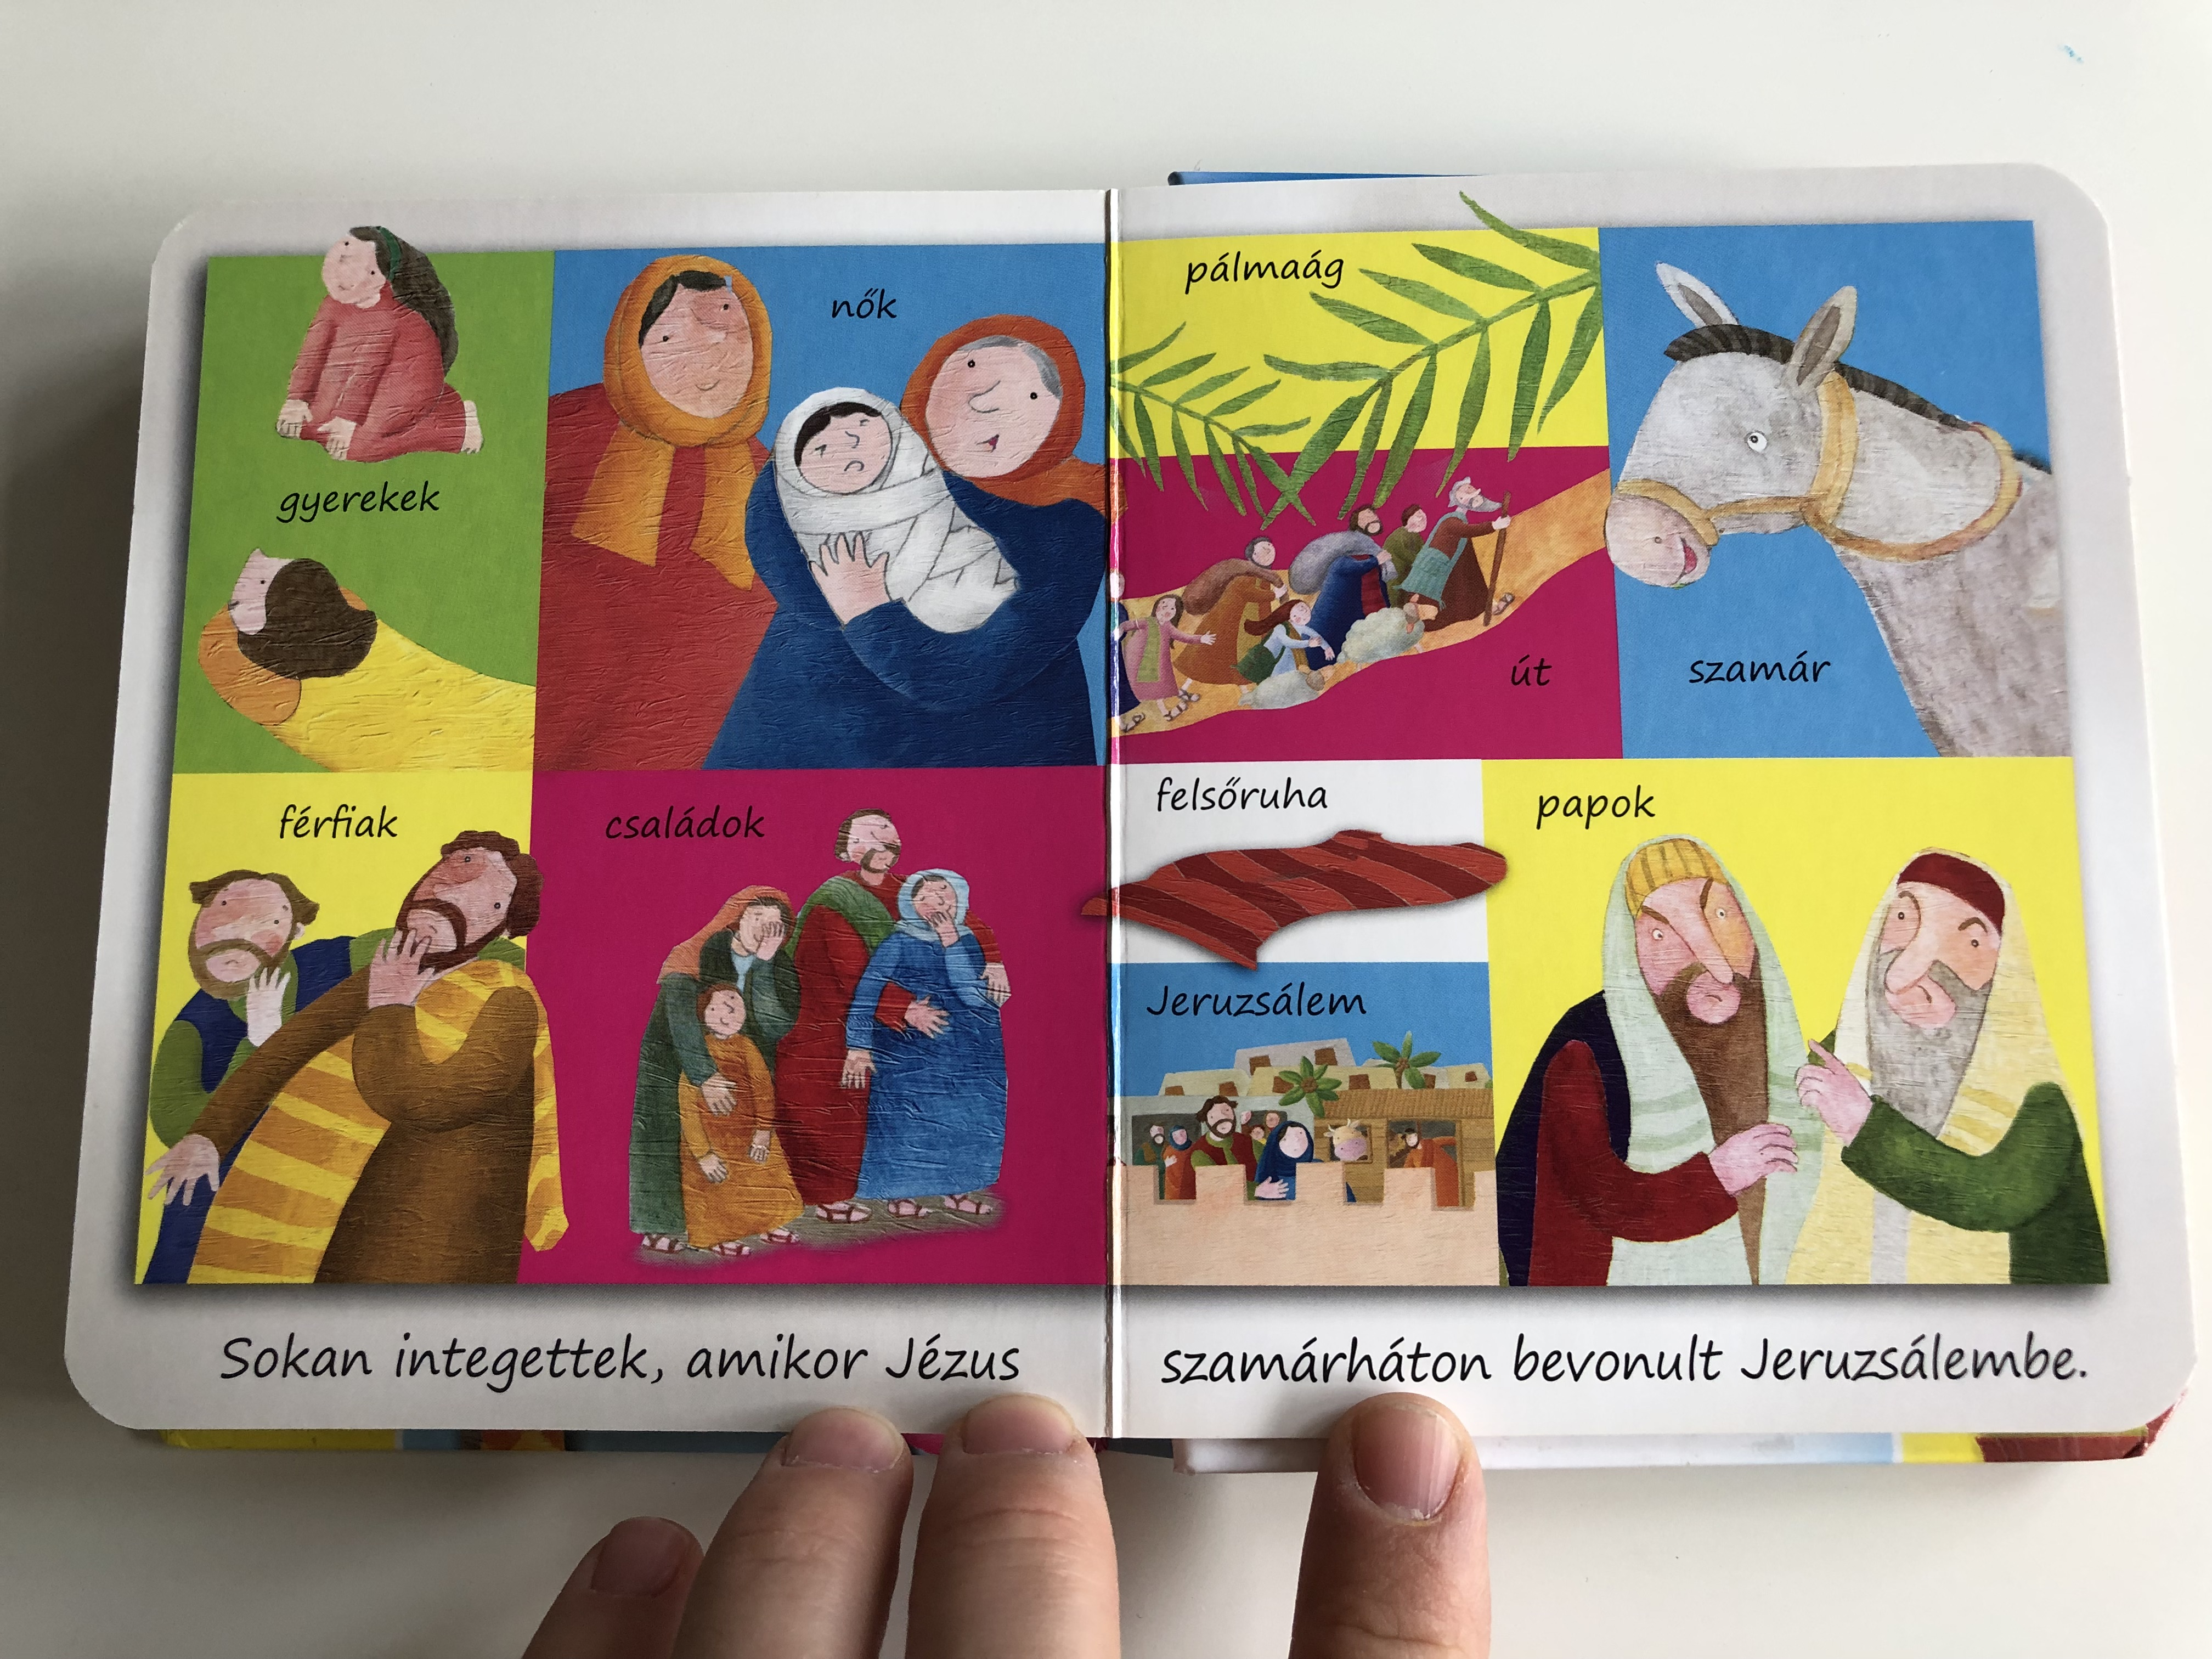 101-k-p-s-sz-bibliai-t-rt-netekhez-by-bethan-james-hungarian-translation-of-101-bible-story-words-by-looking-at-the-pictures-they-learn-the-words-that-make-up-their-favourite-bible-stories.-12-.jpg